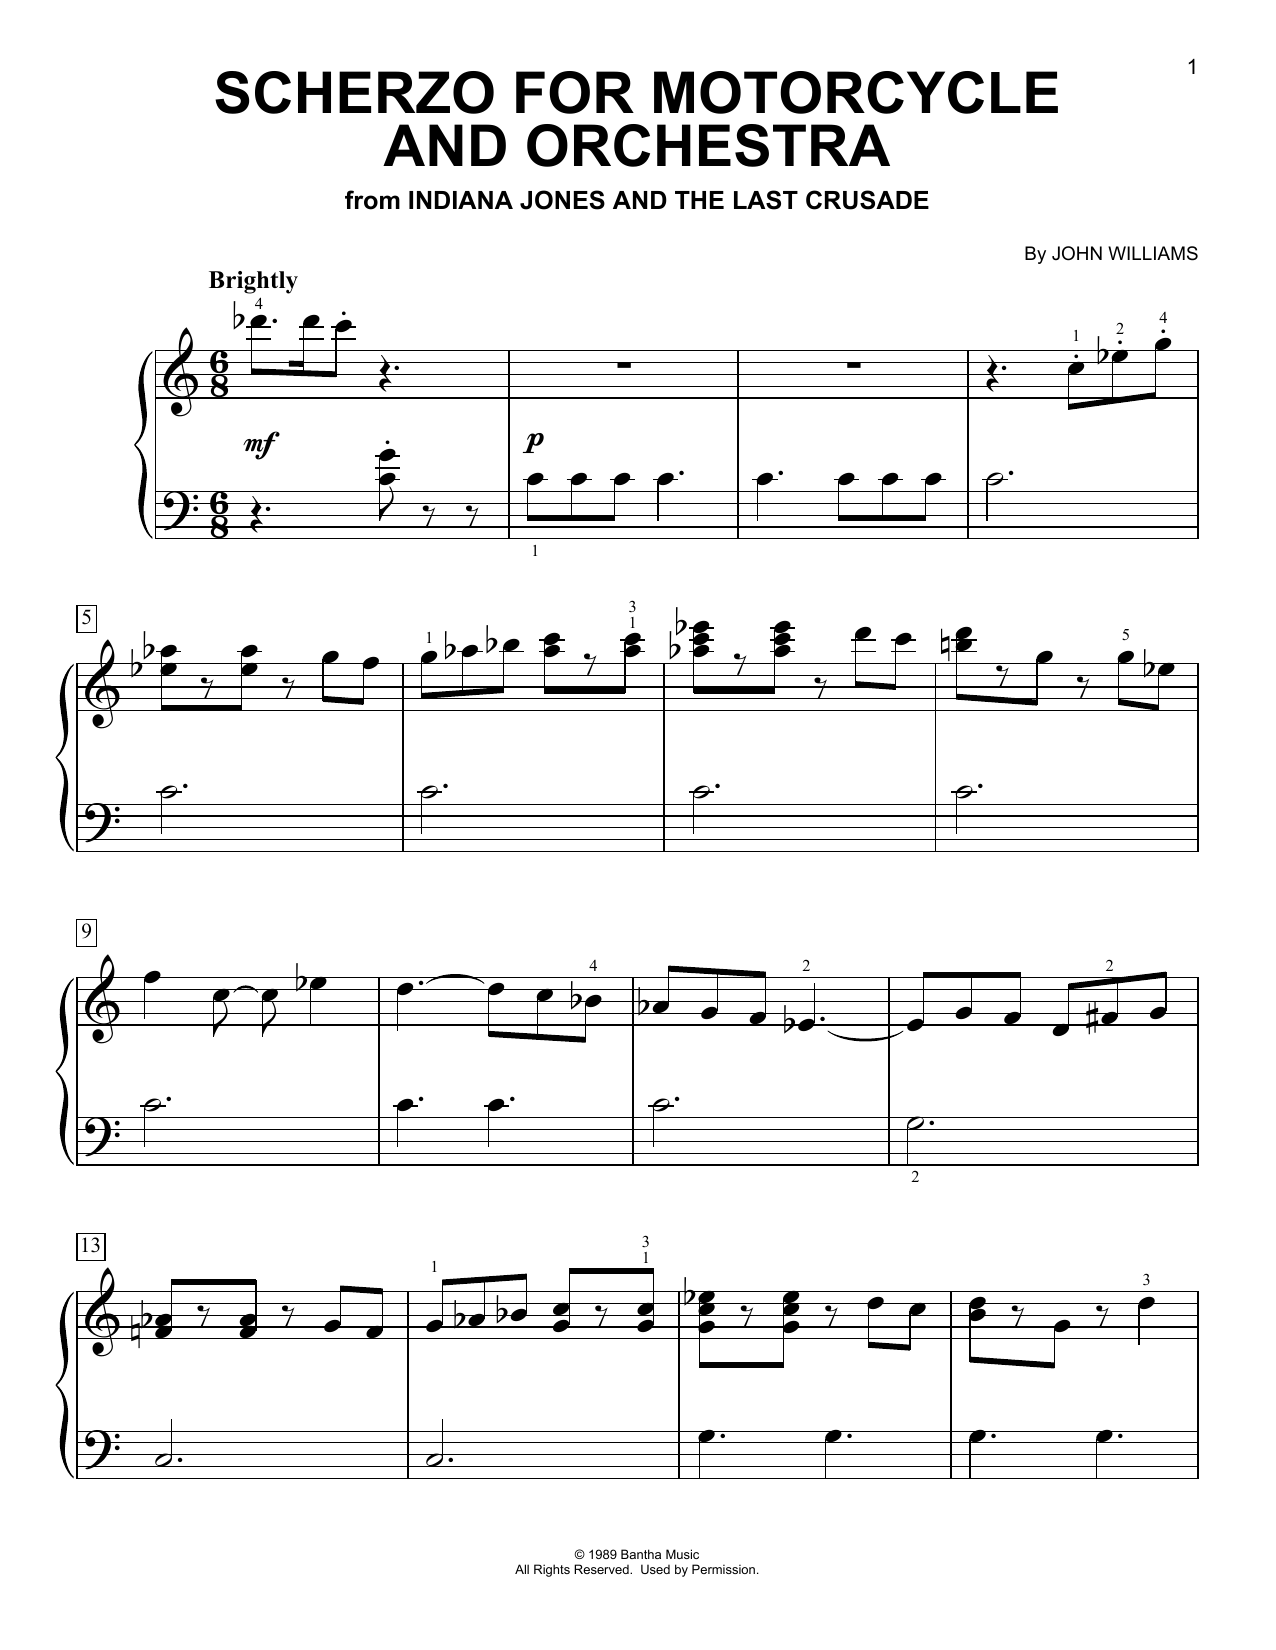 John Williams Scherzo For Motorcycle And Orchestra (from Indiana Jones) sheet music notes and chords. Download Printable PDF.